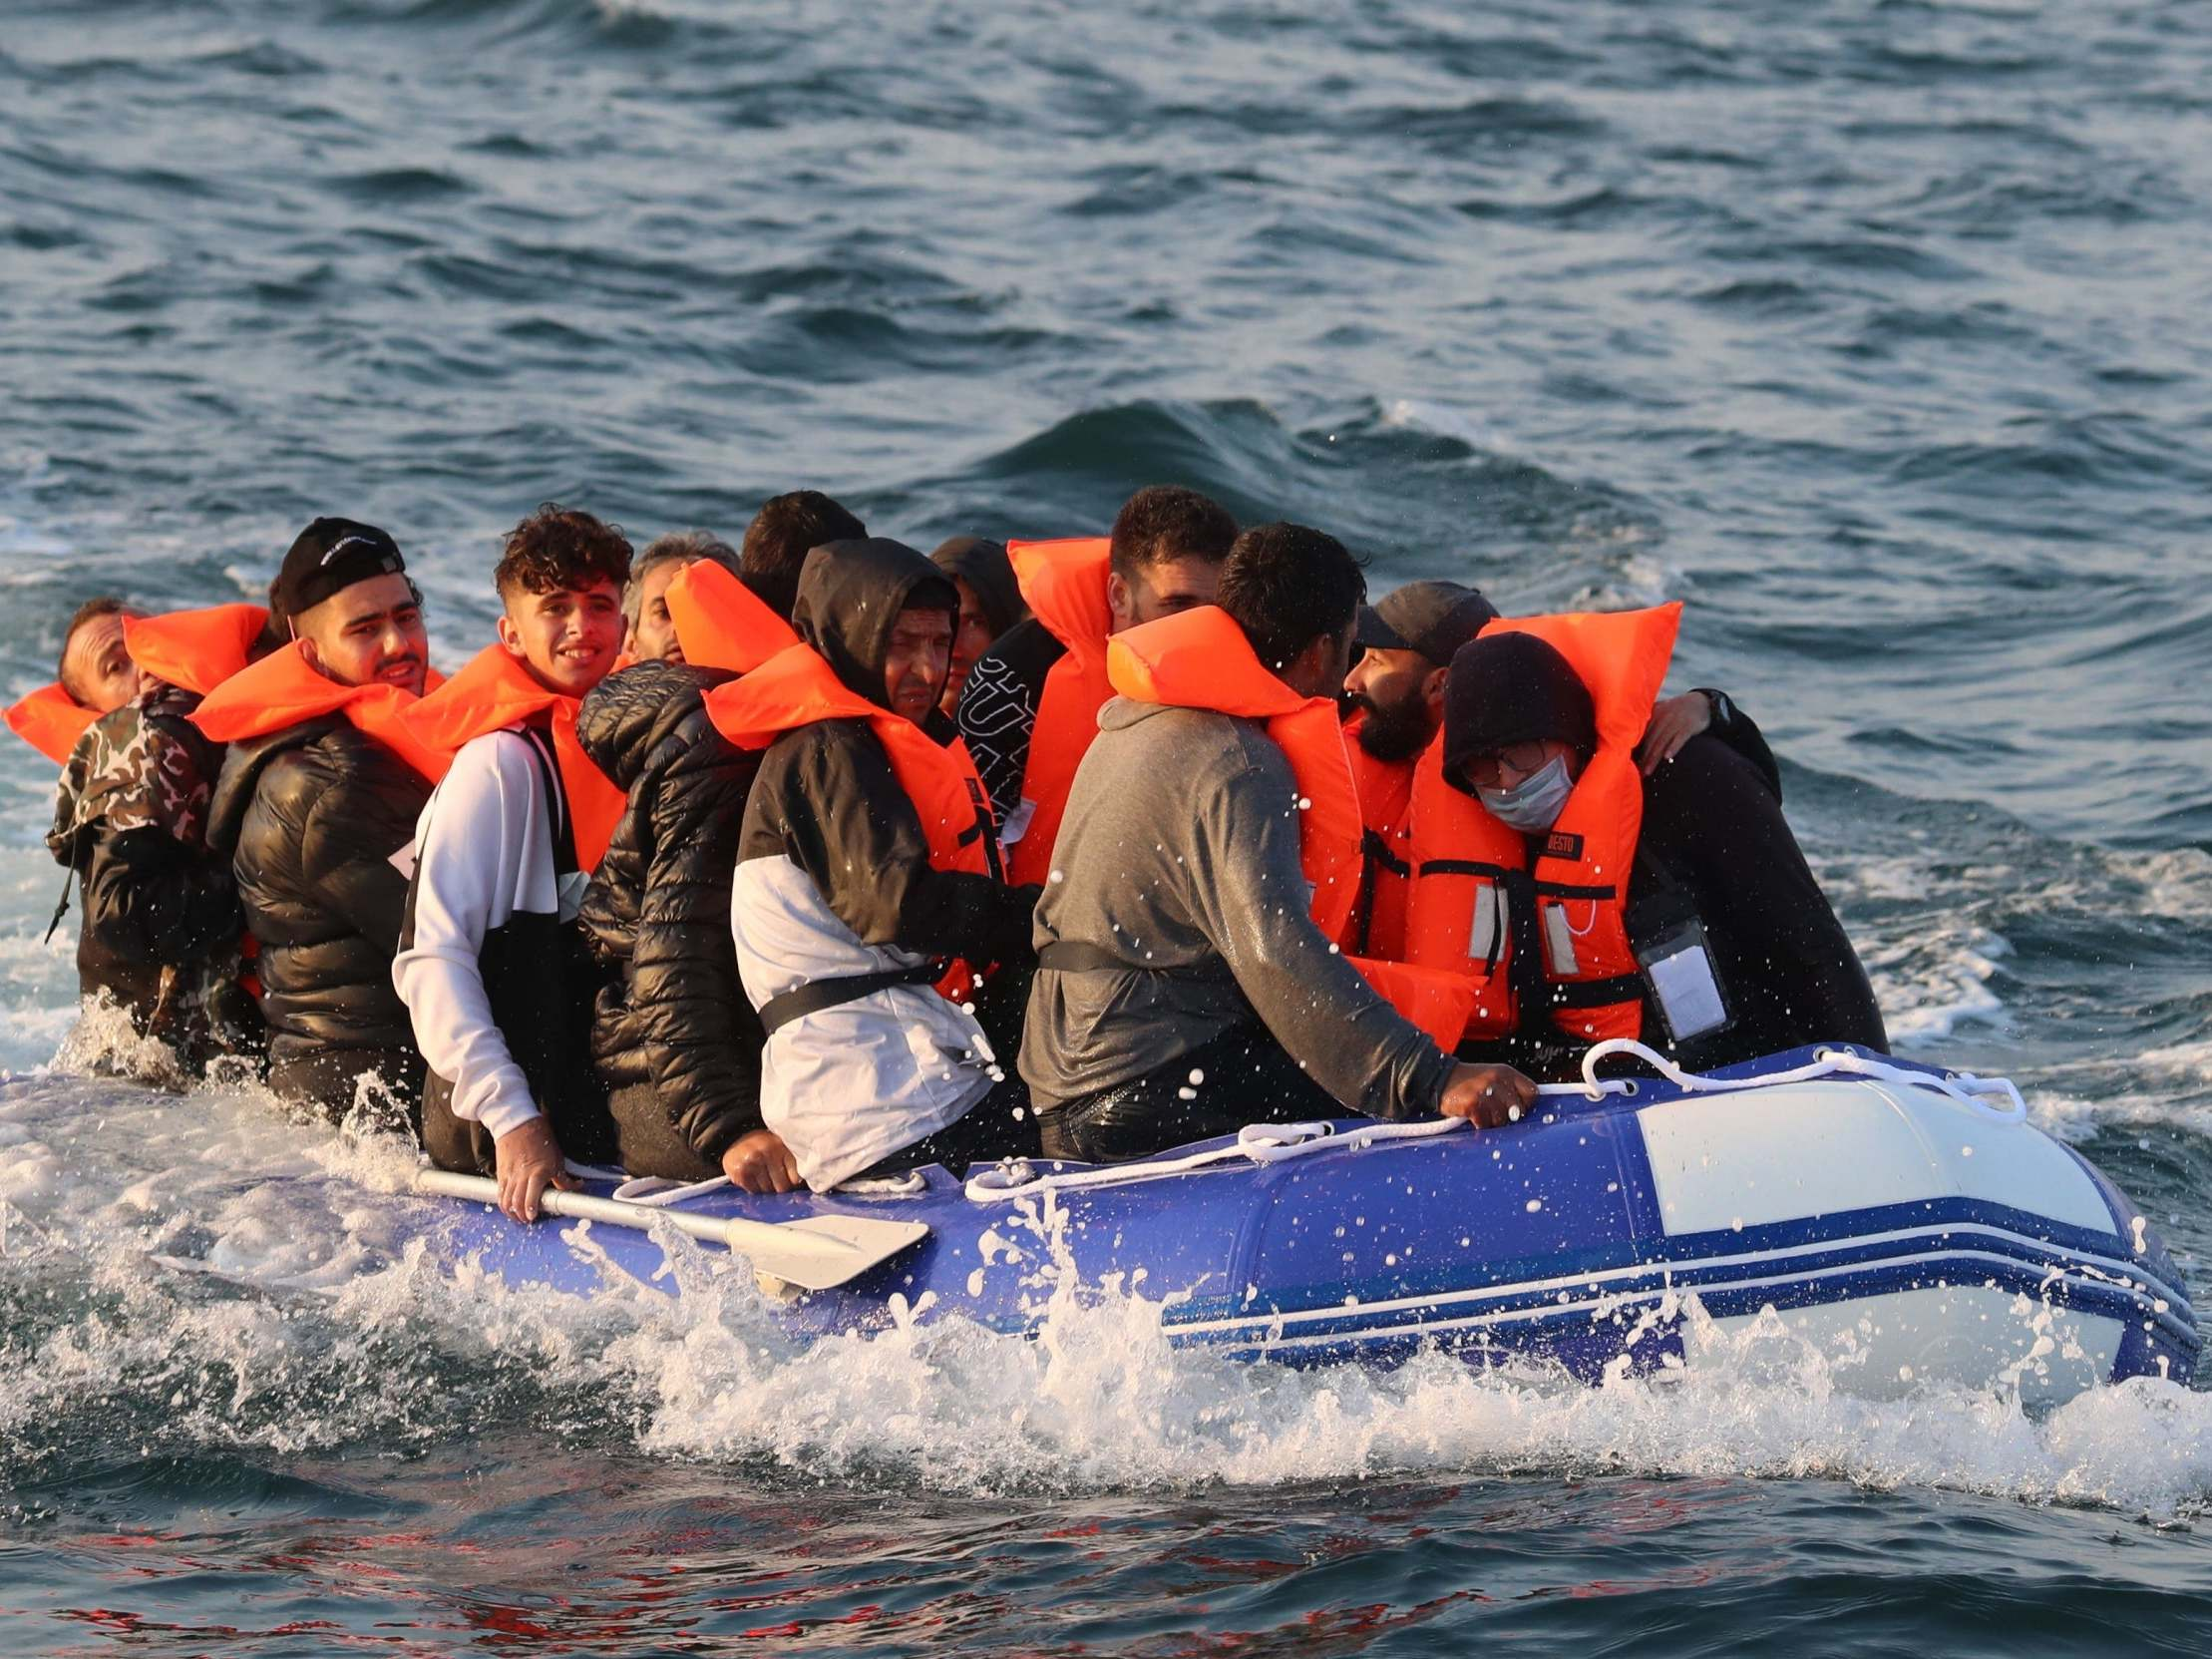 Opinion: The way we treat migrants crossing the Channel is wrong and against British values